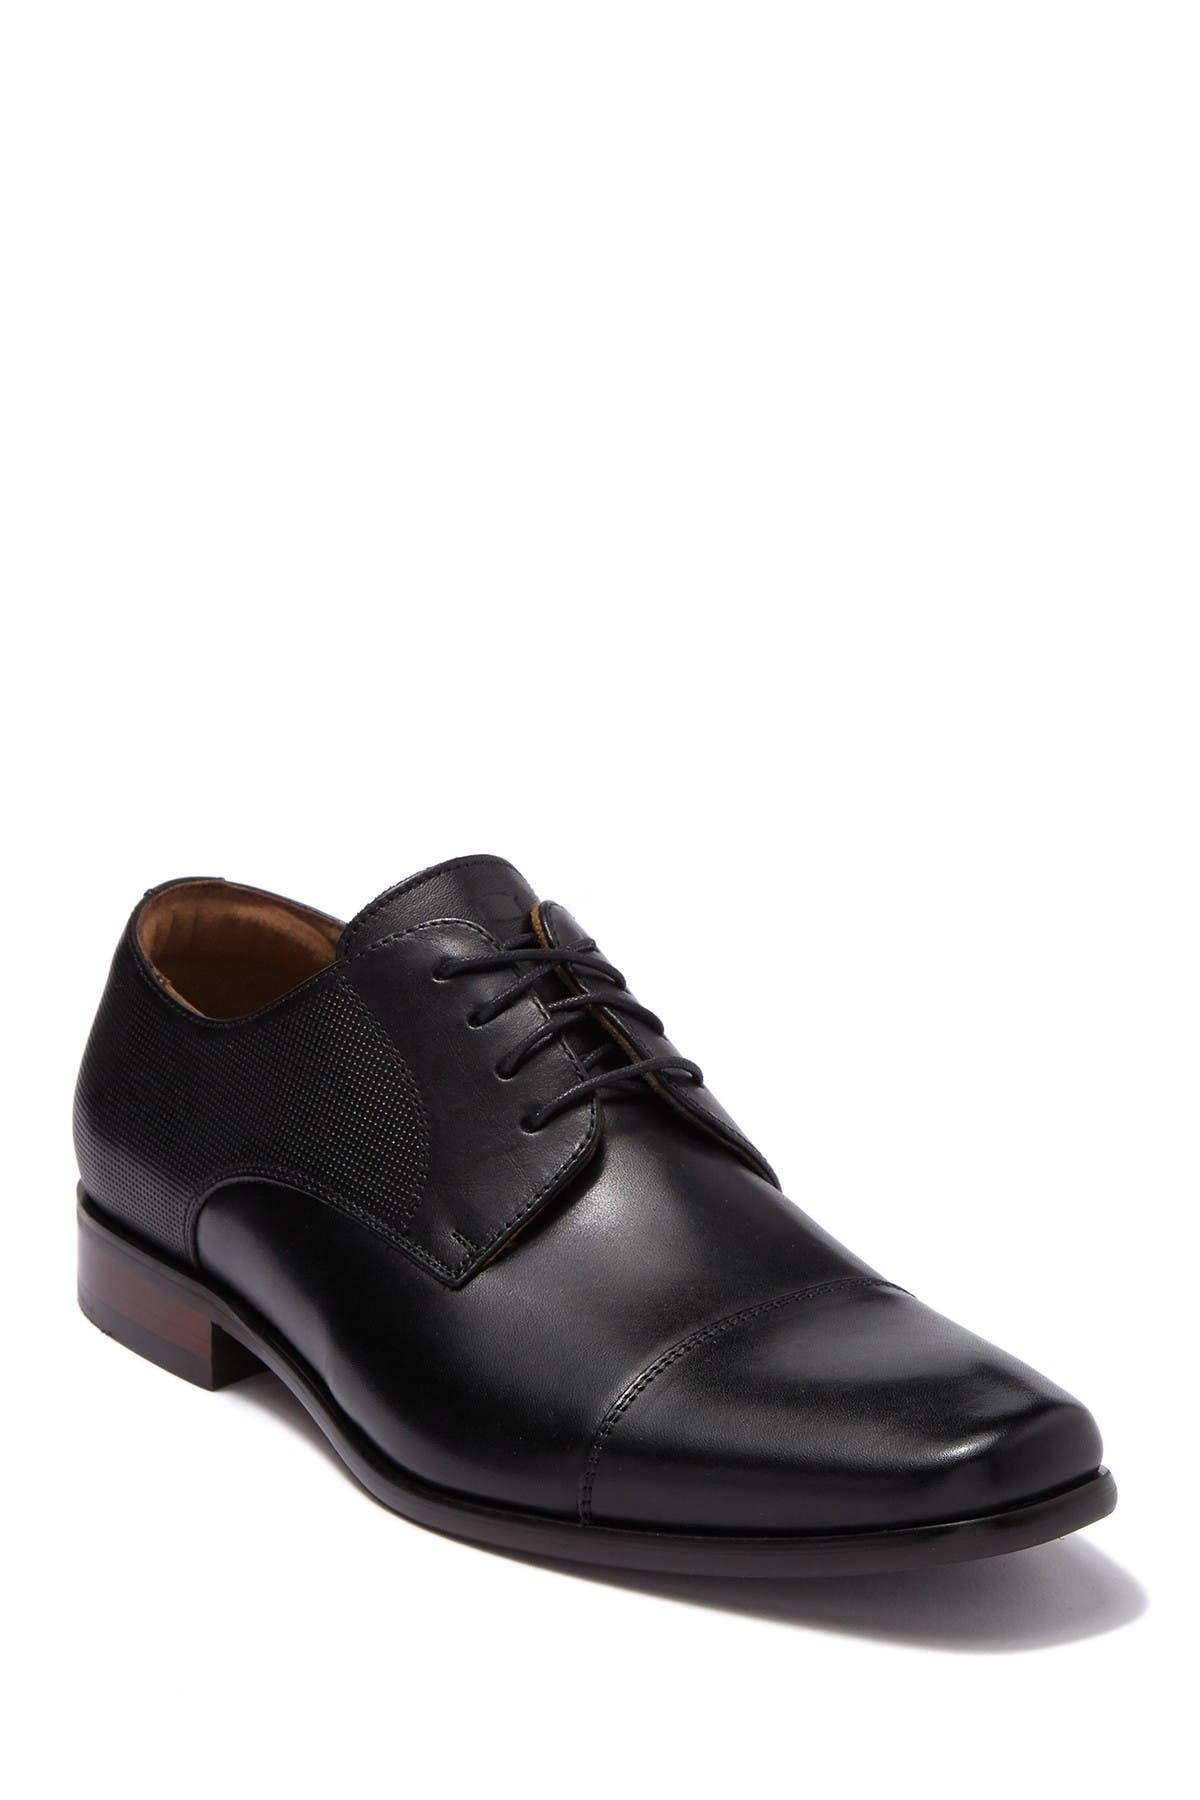 Details about  /Mister Men/'s Oxford Navy//Wine Leather Dress Shoes 35651 Made In Spain